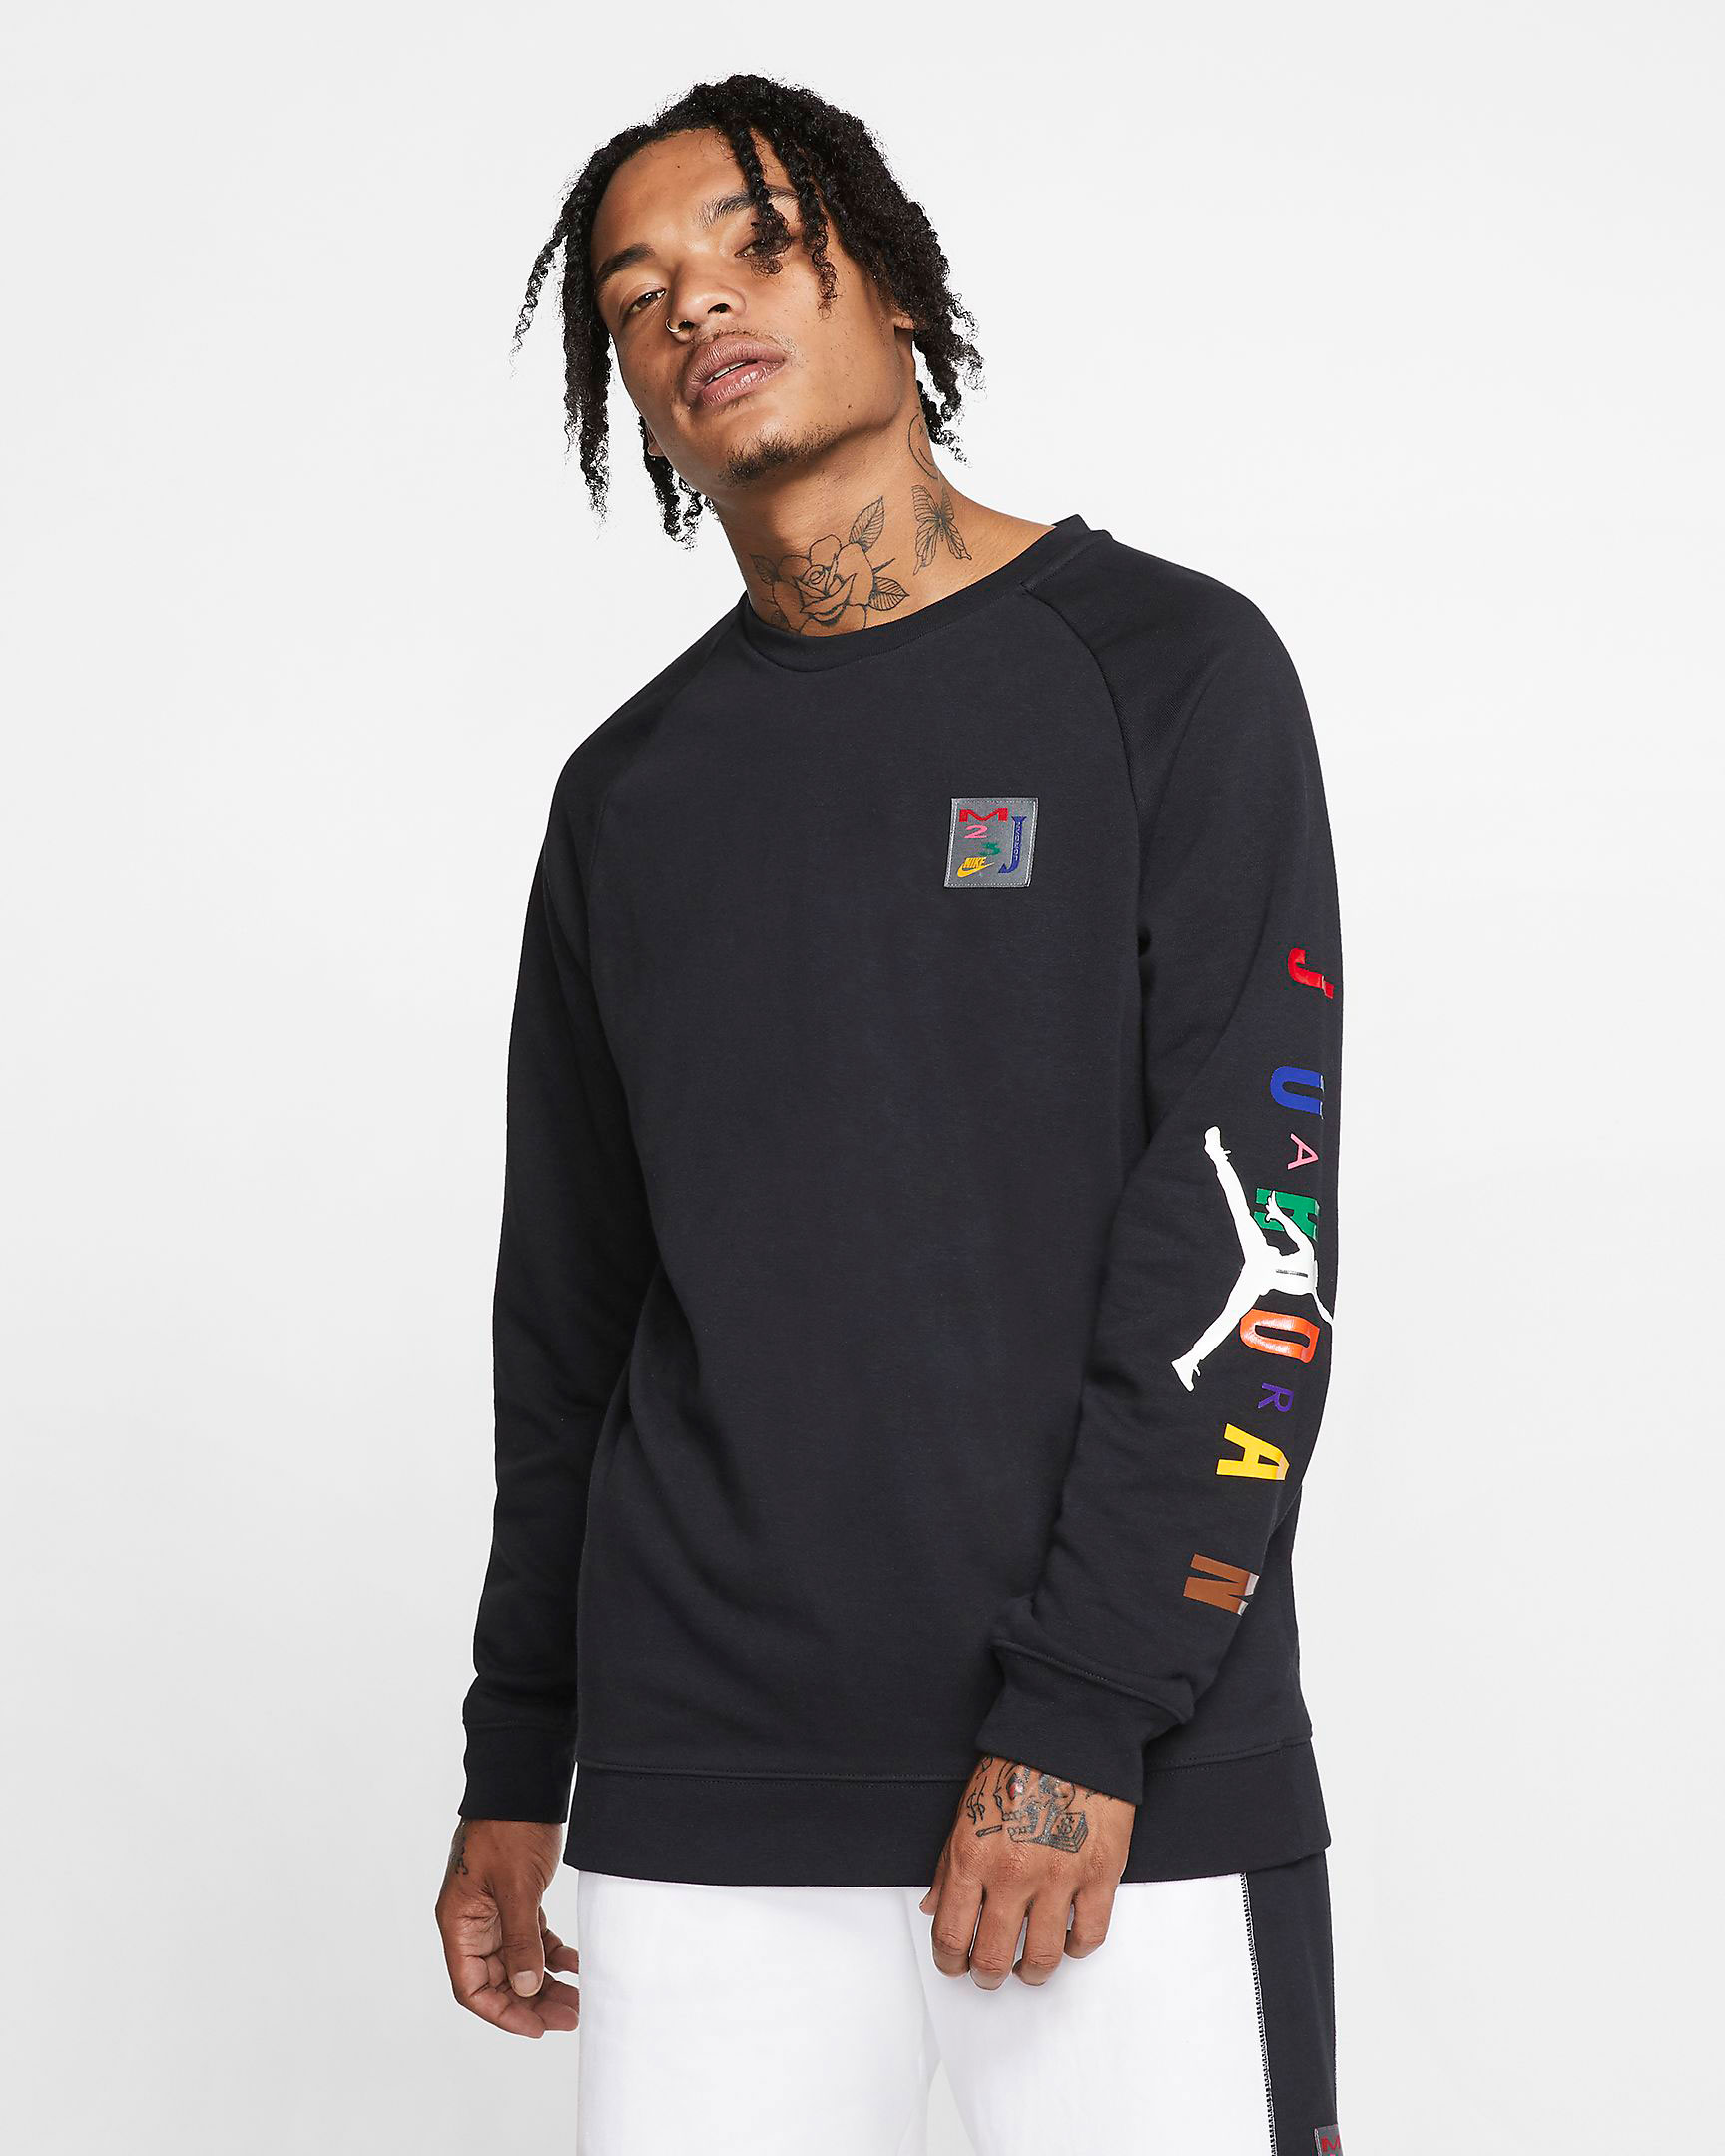 jordan-sport-dna-multi-color-crew-sweatshirt-2